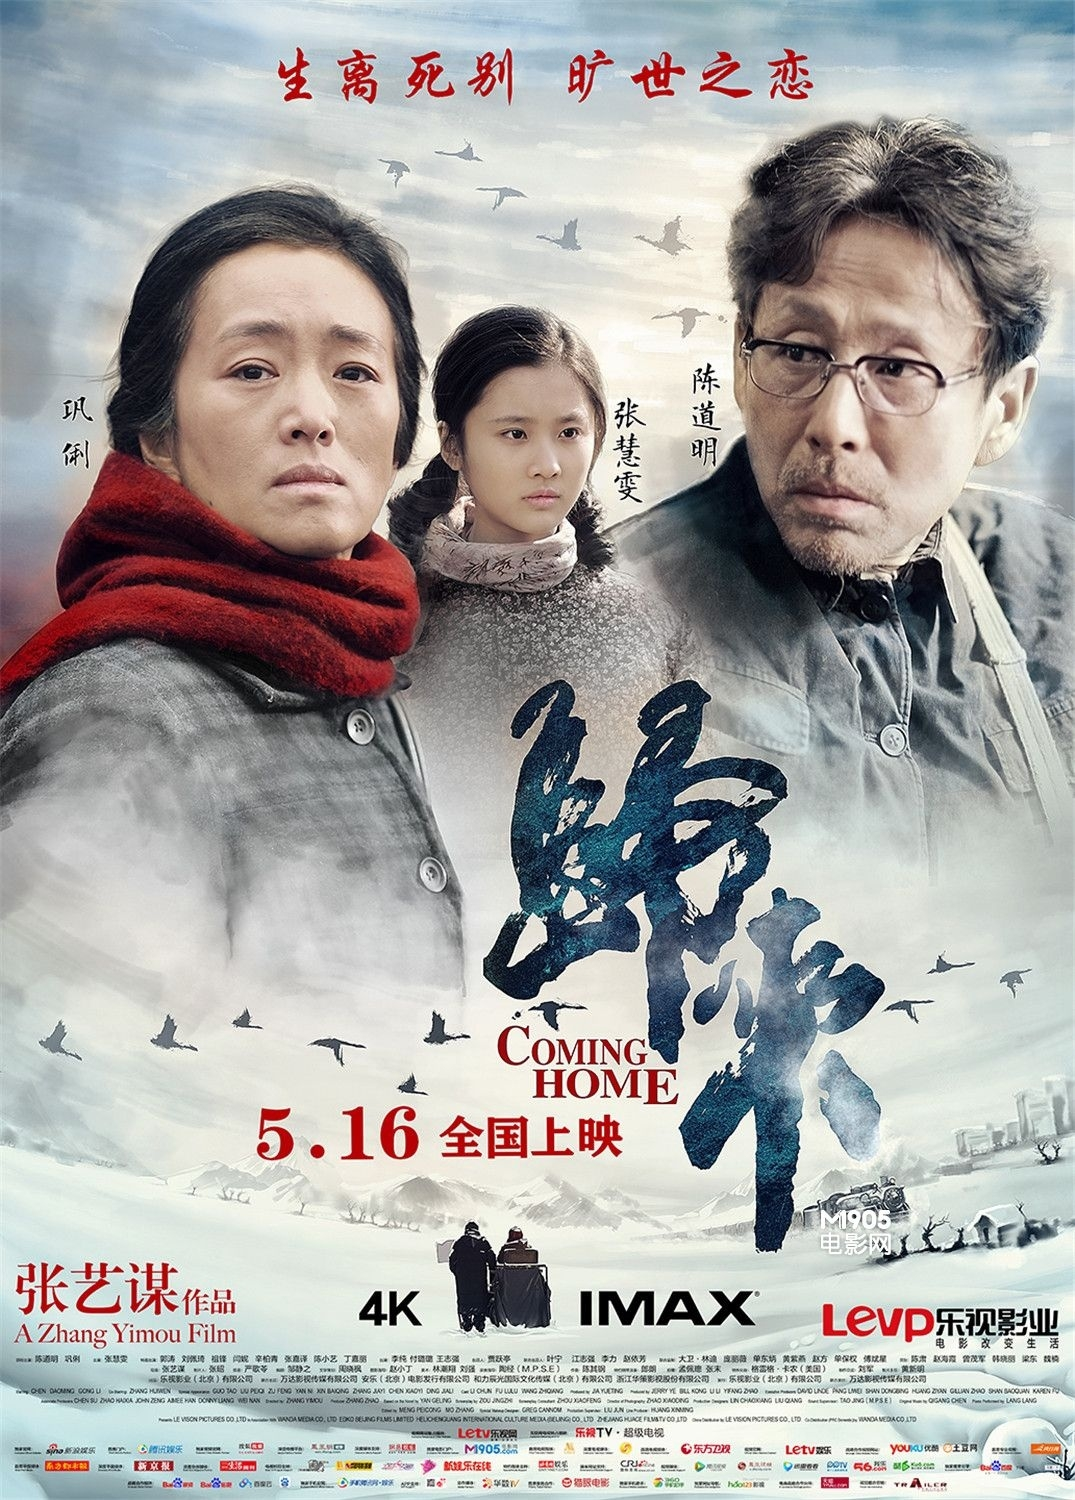 Coming home: il poster del film